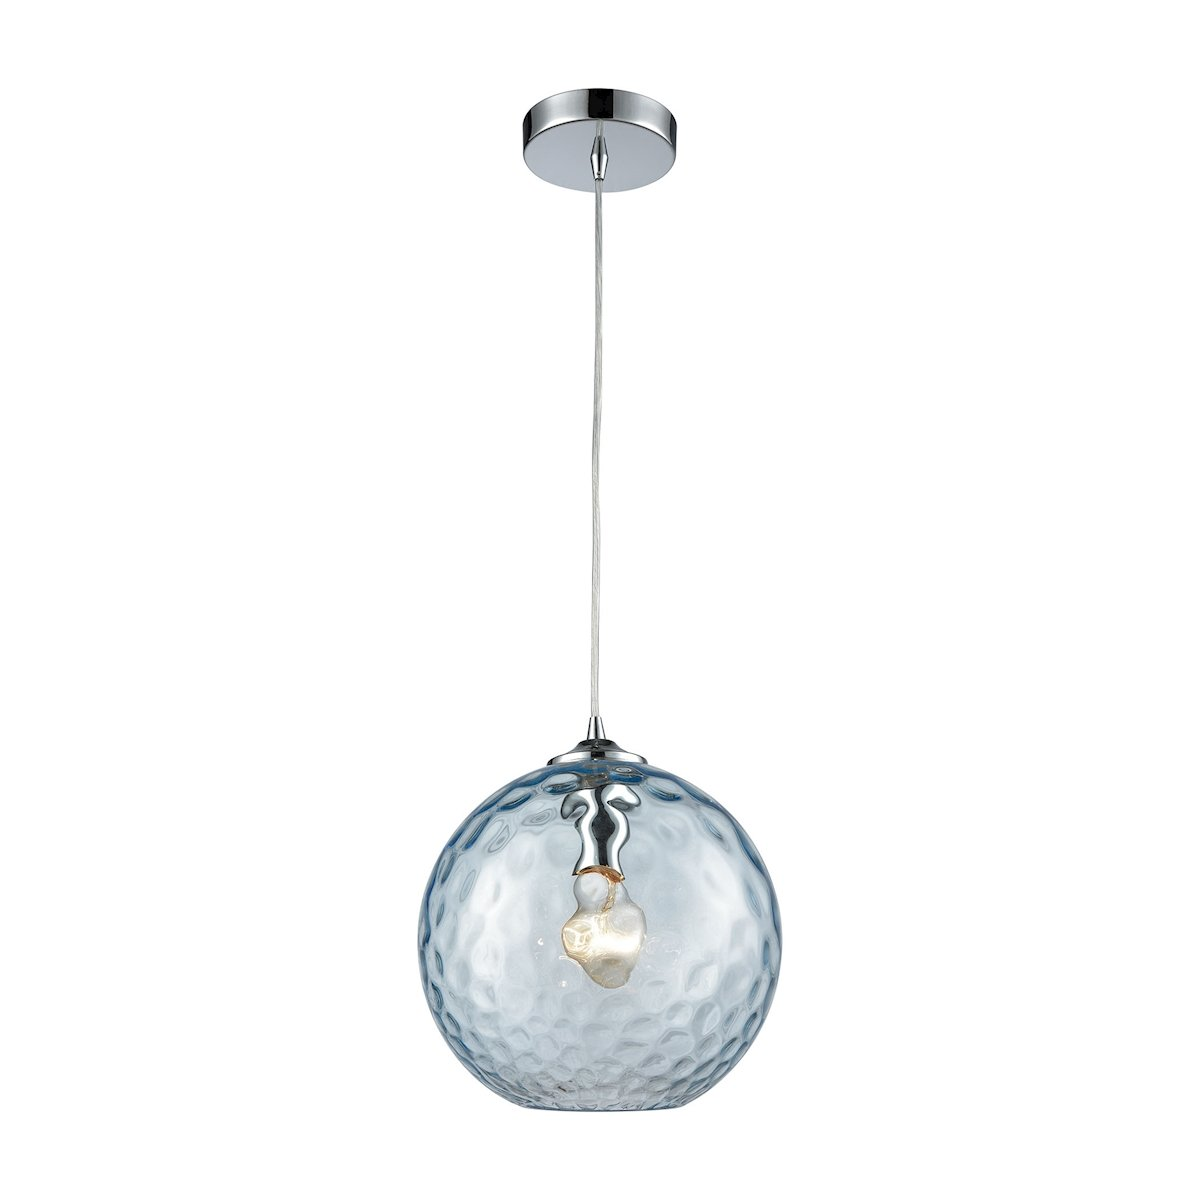 Watersphere 1 Light Pendant In Polished Chrome With Aqua Hammered Glass by Elk Lighting Group